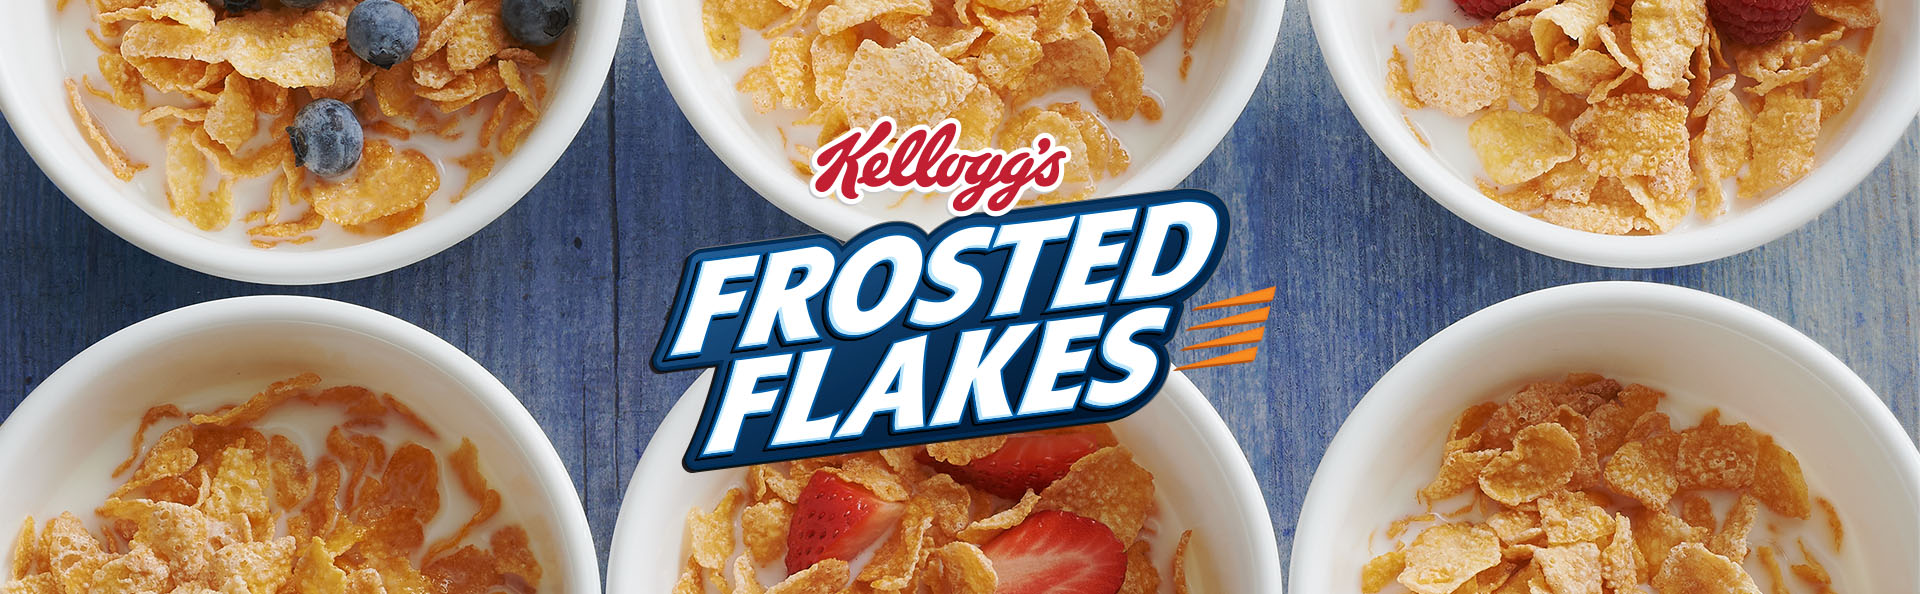 Enjoy a delicious bowl of Kelloggs Frosted Flakes breakfast cereal with your favorite milk